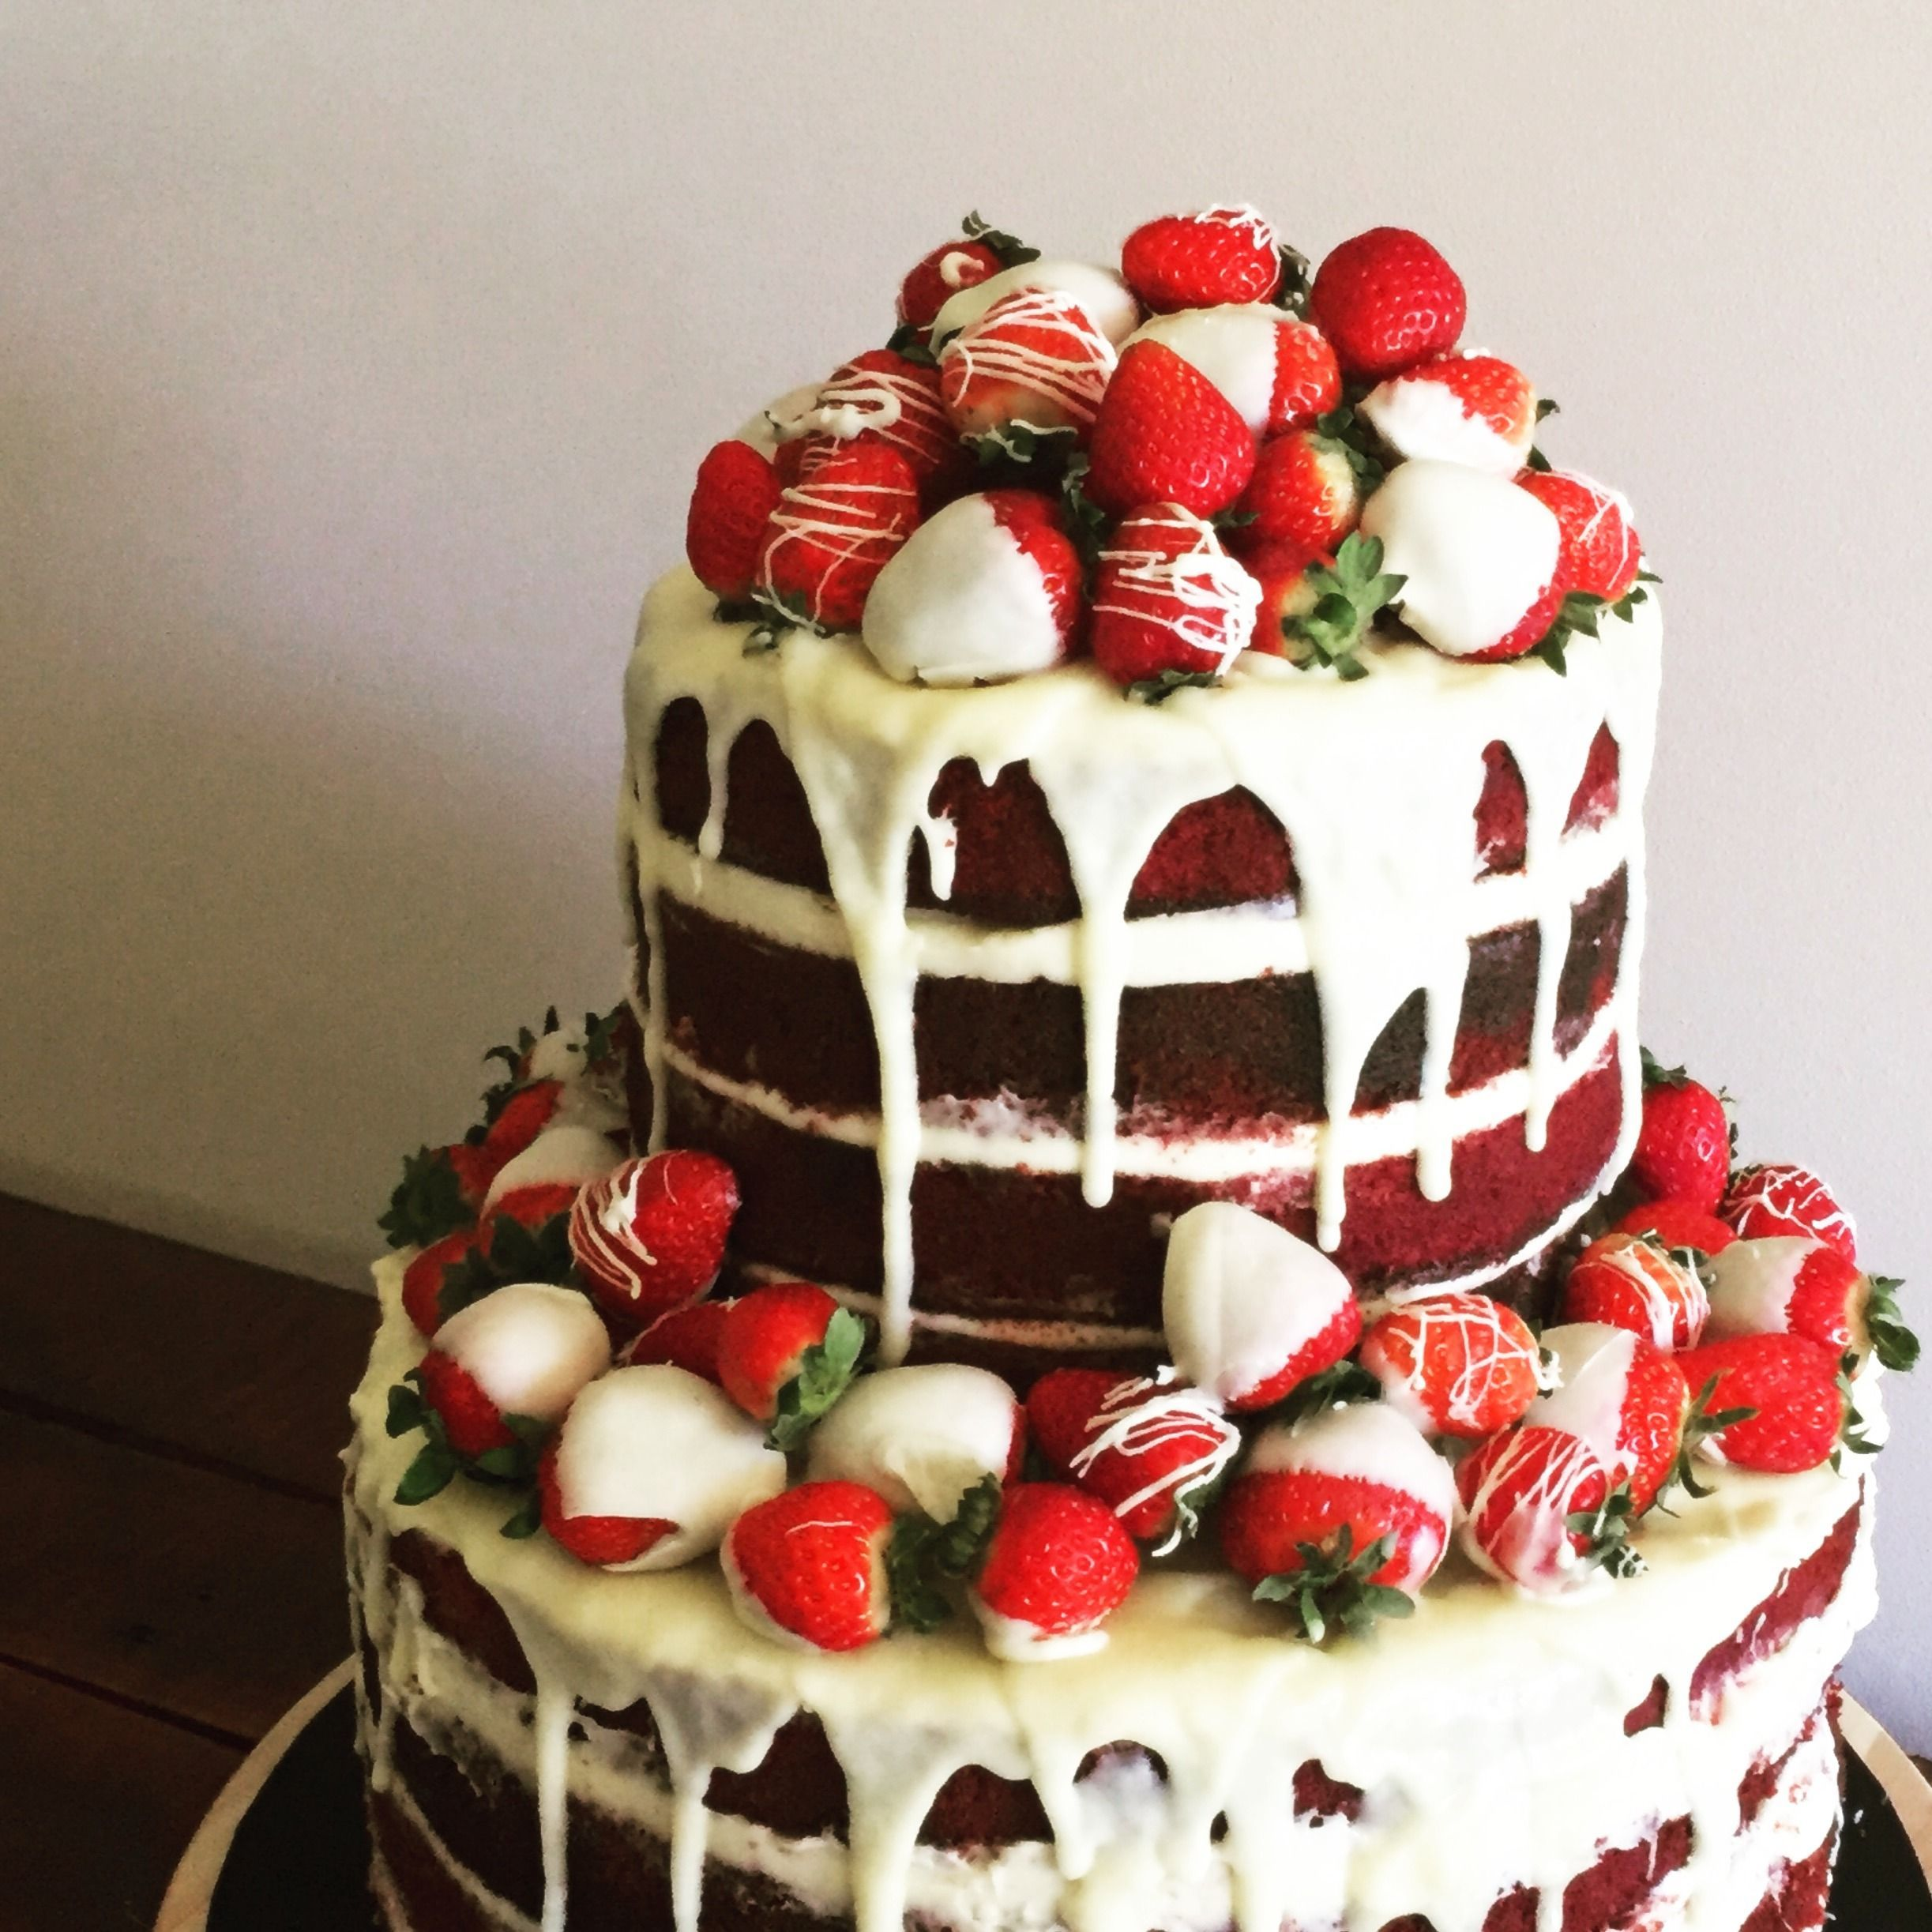 23 Inspiration Image Of Red Velvet Birthday Cake 2 Tier Layered With Cream Cheese Butter Frosting